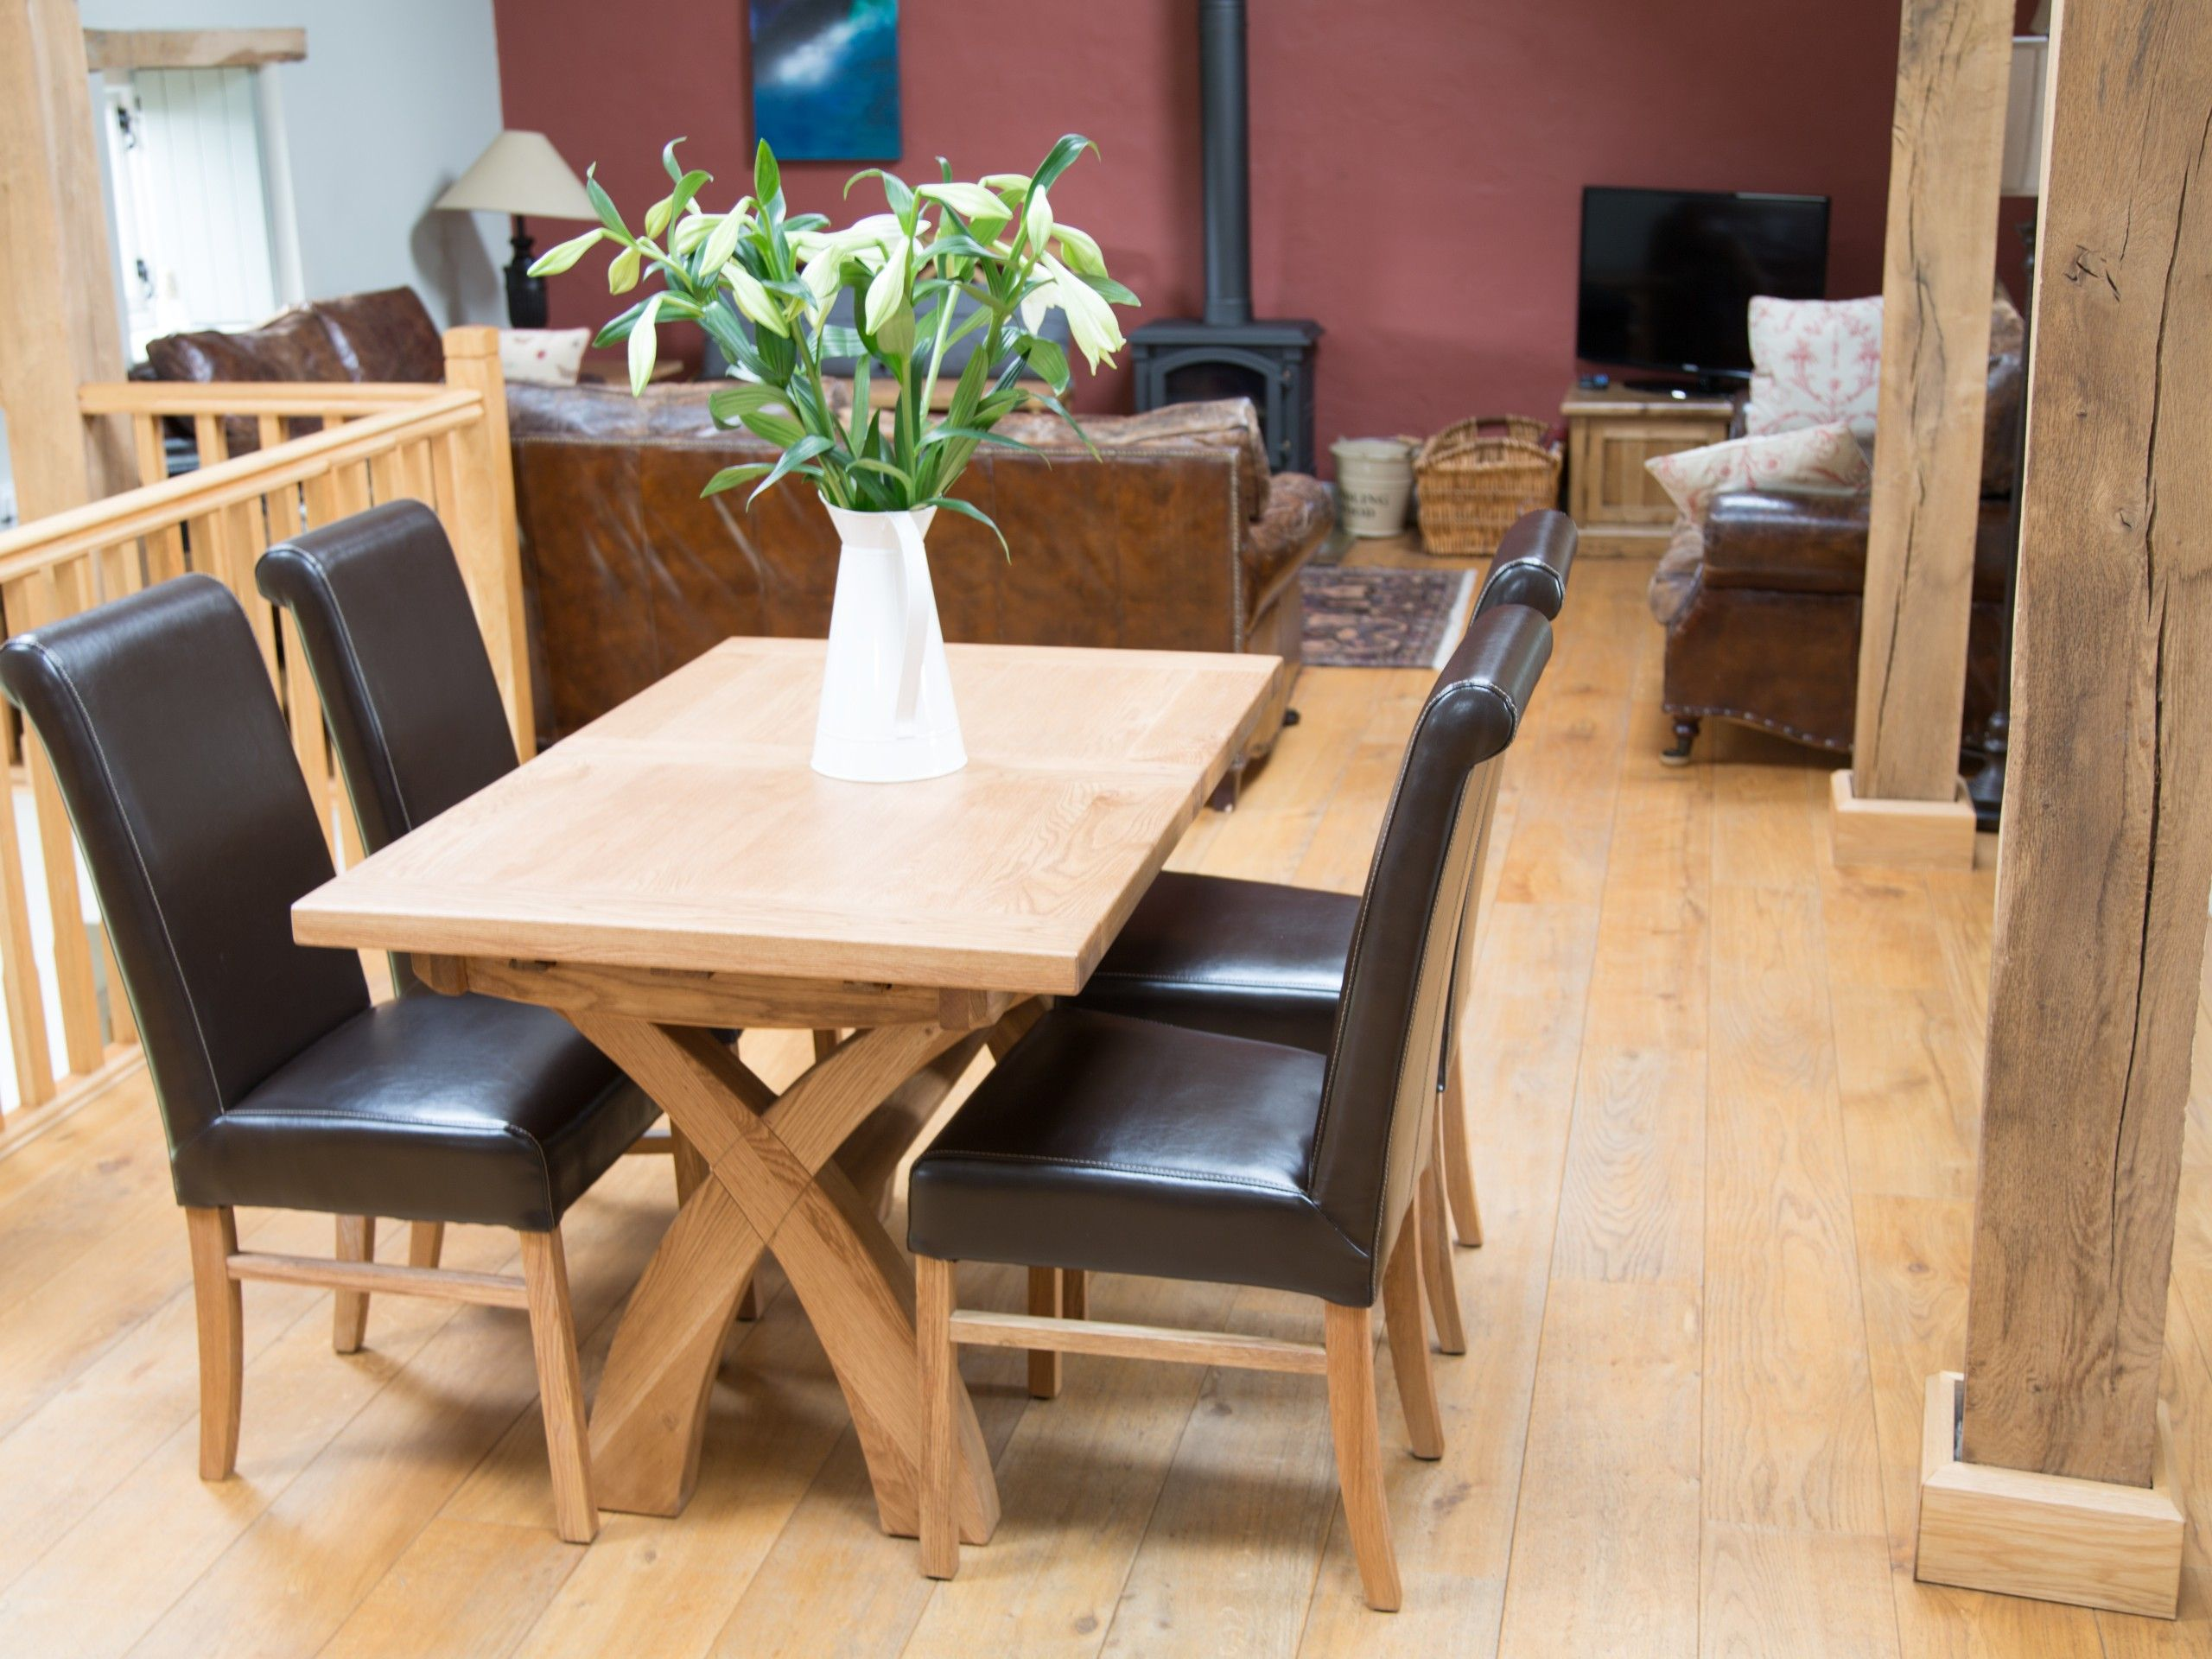 Cross leg oak dining table and leather dining chairs in a barn ...